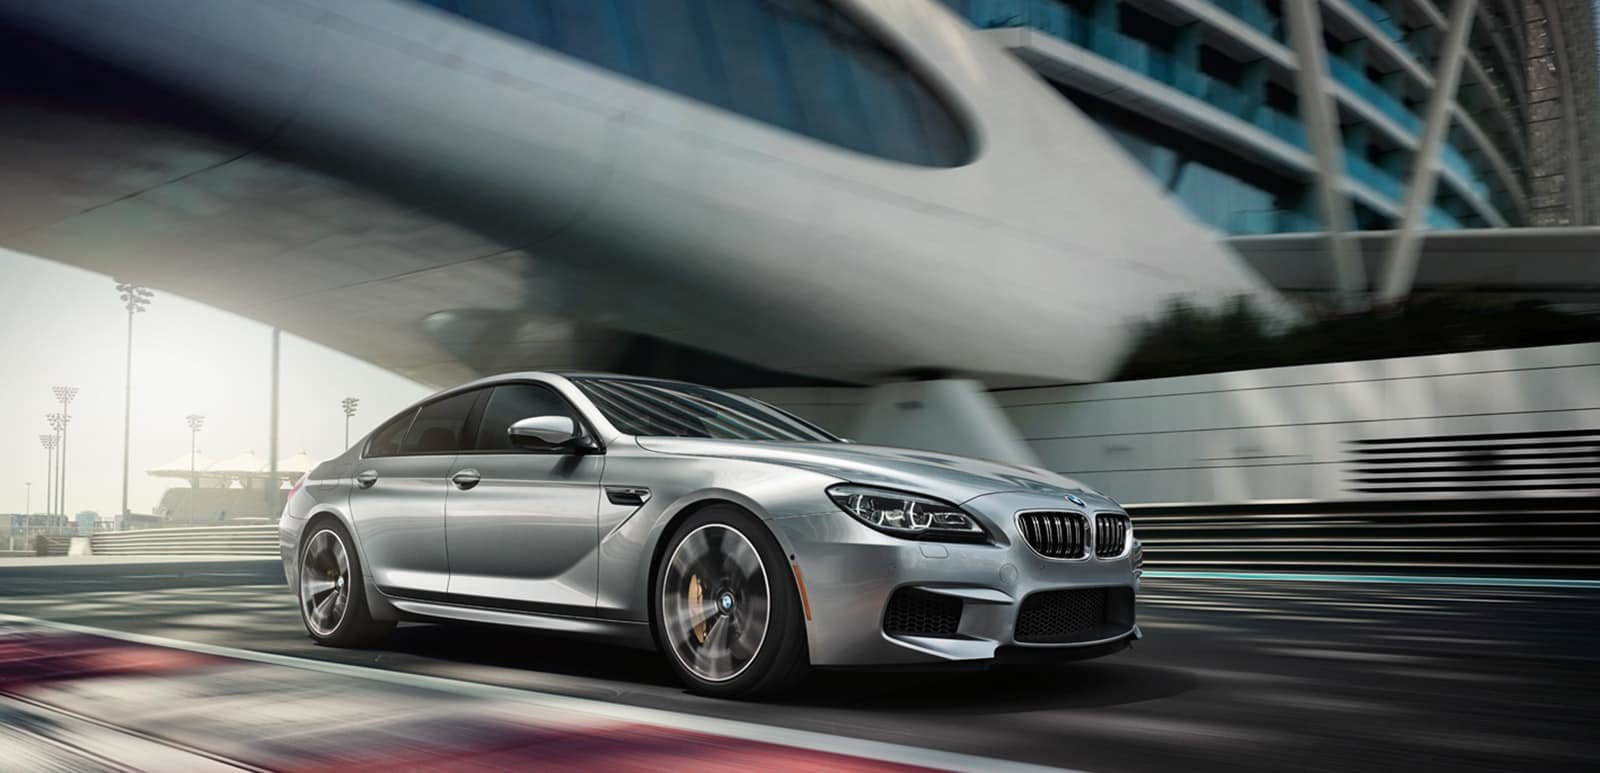 New Bmw Models Price Lease Offers San Francisco Ca